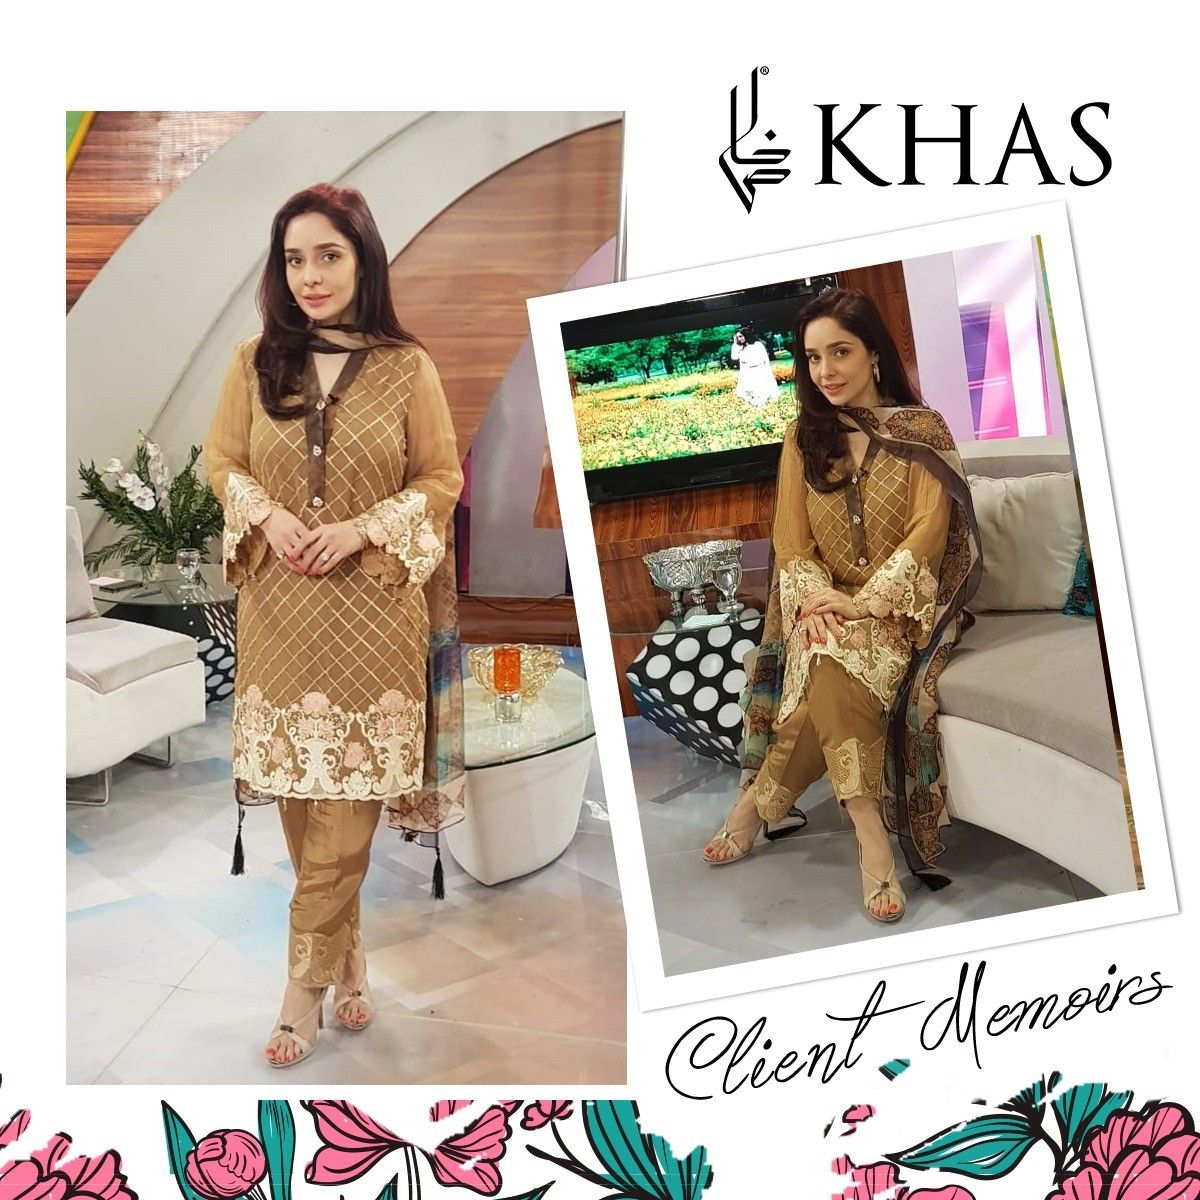 Stylish, Juggun Kazim Takes Center Stage Clad In Our